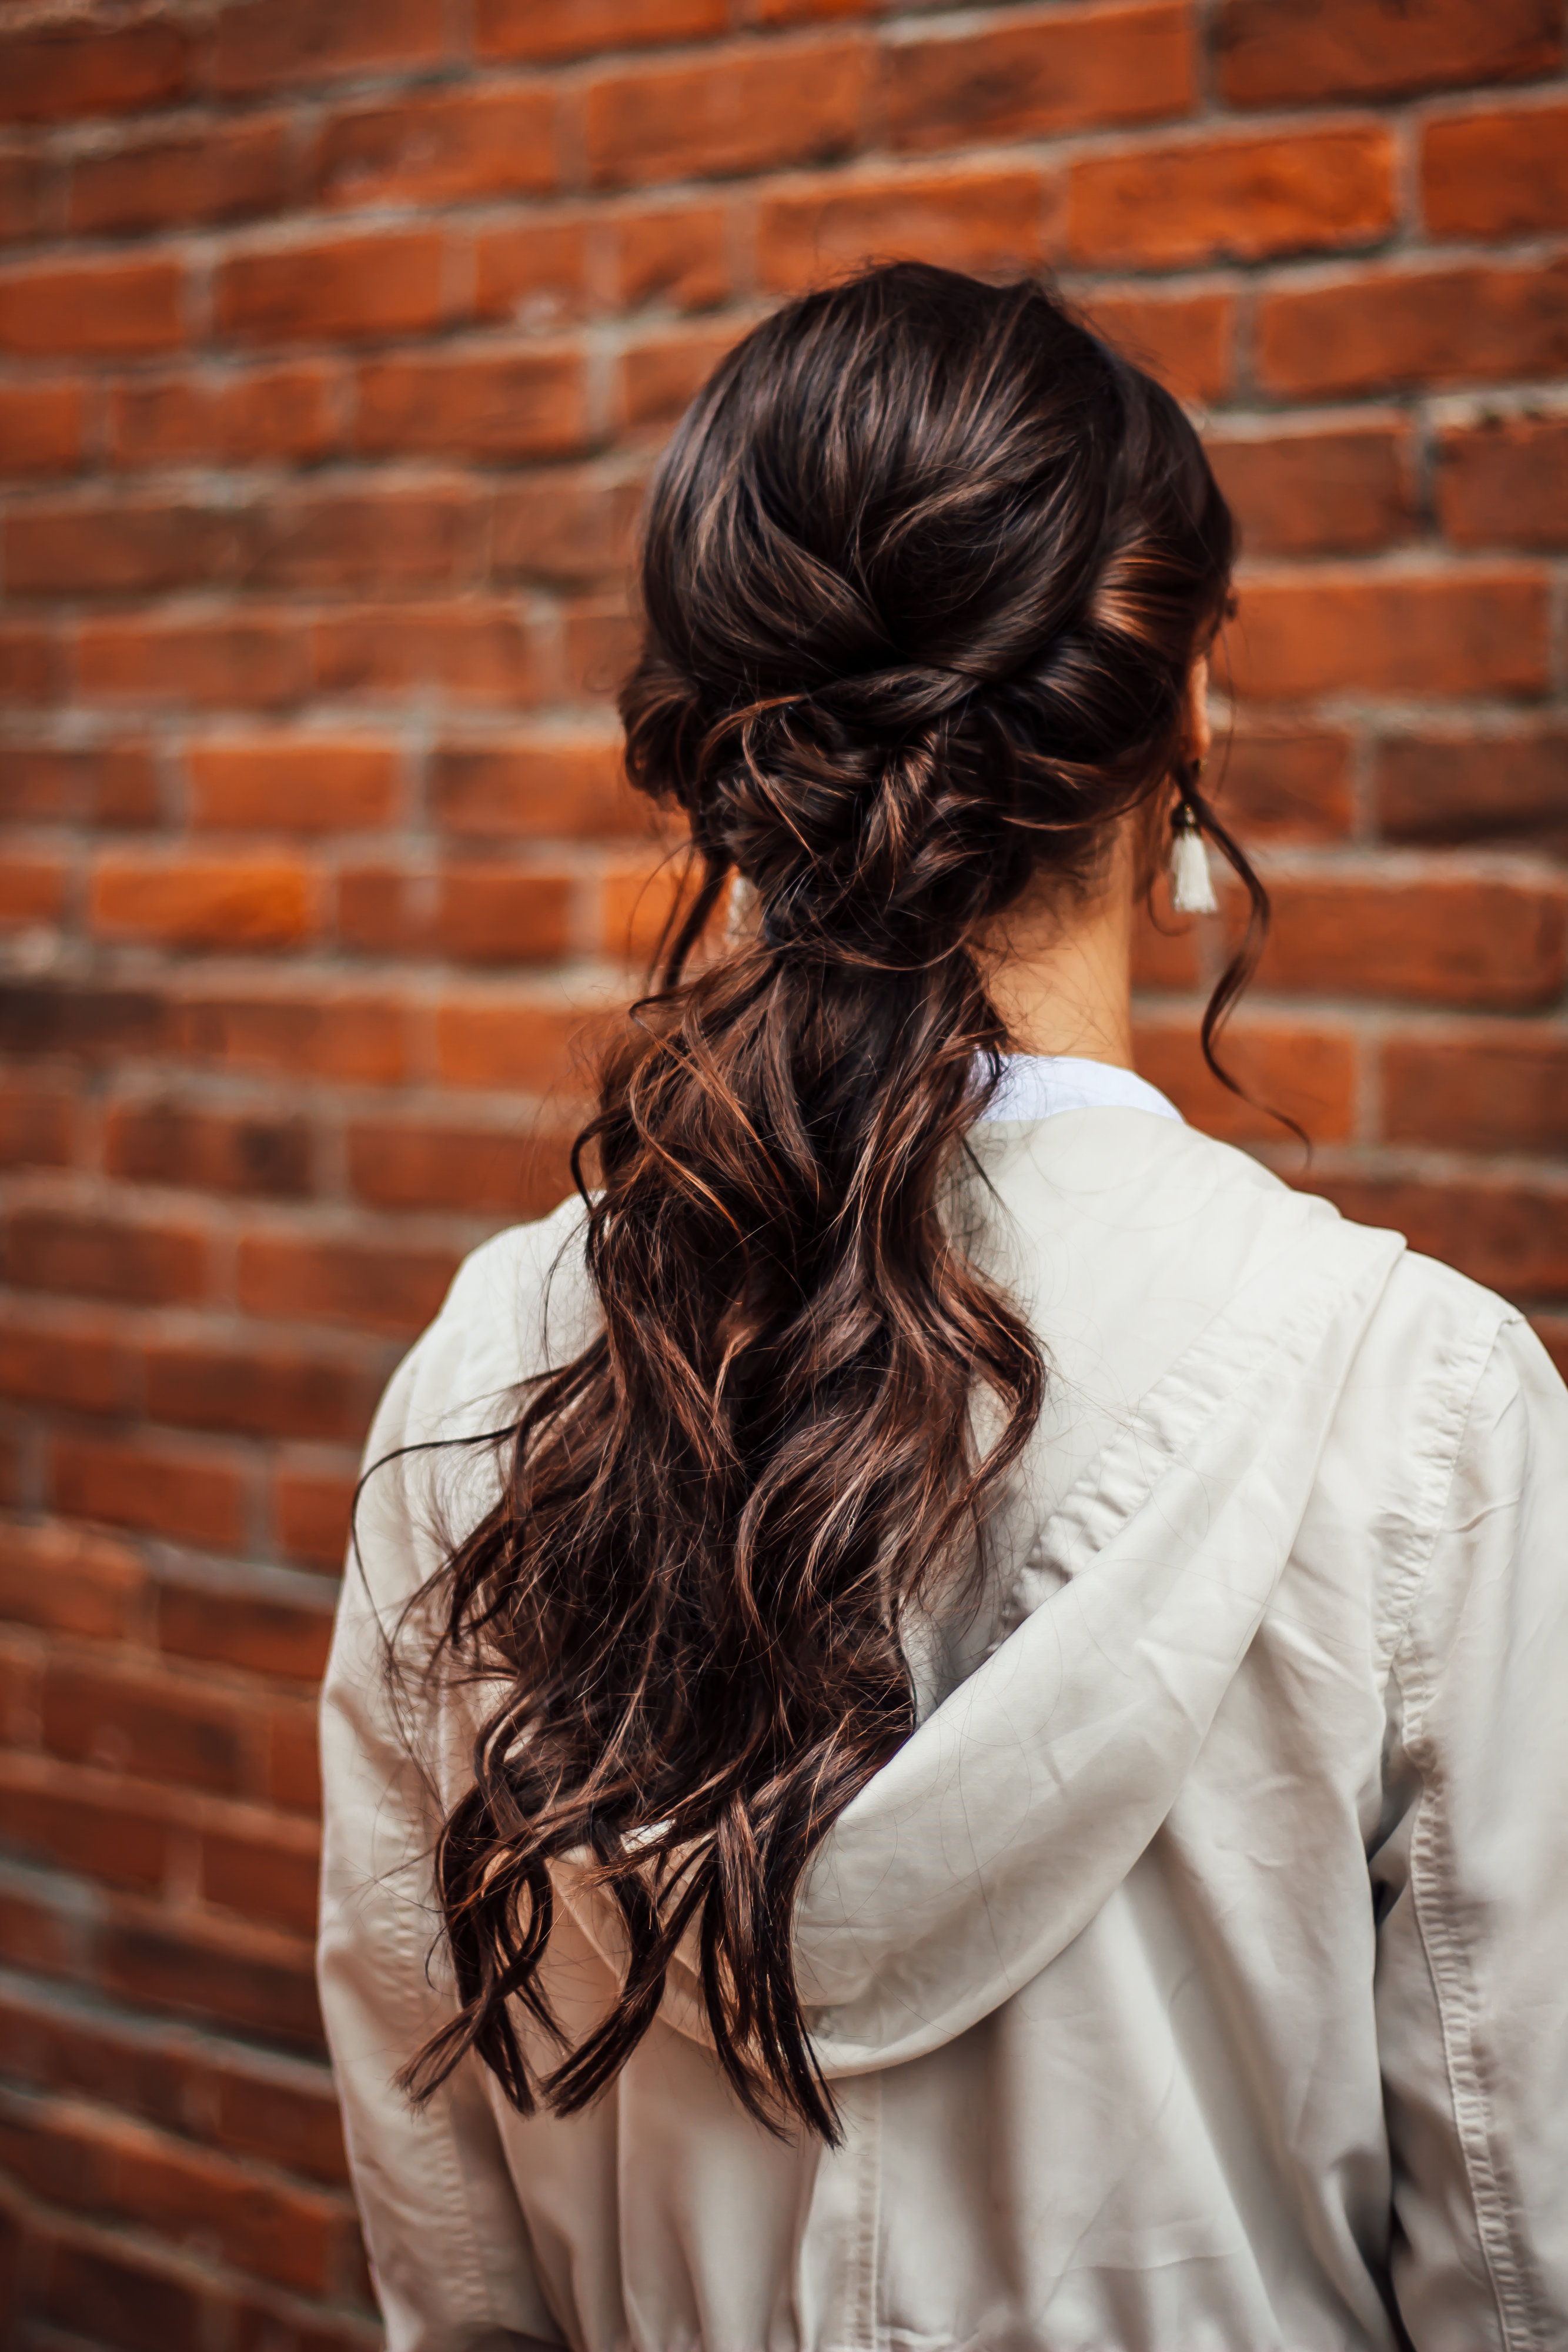 Woman with complex braiding hairstyle on long brown hair at Indigo Collective at Hunterdon, NJ